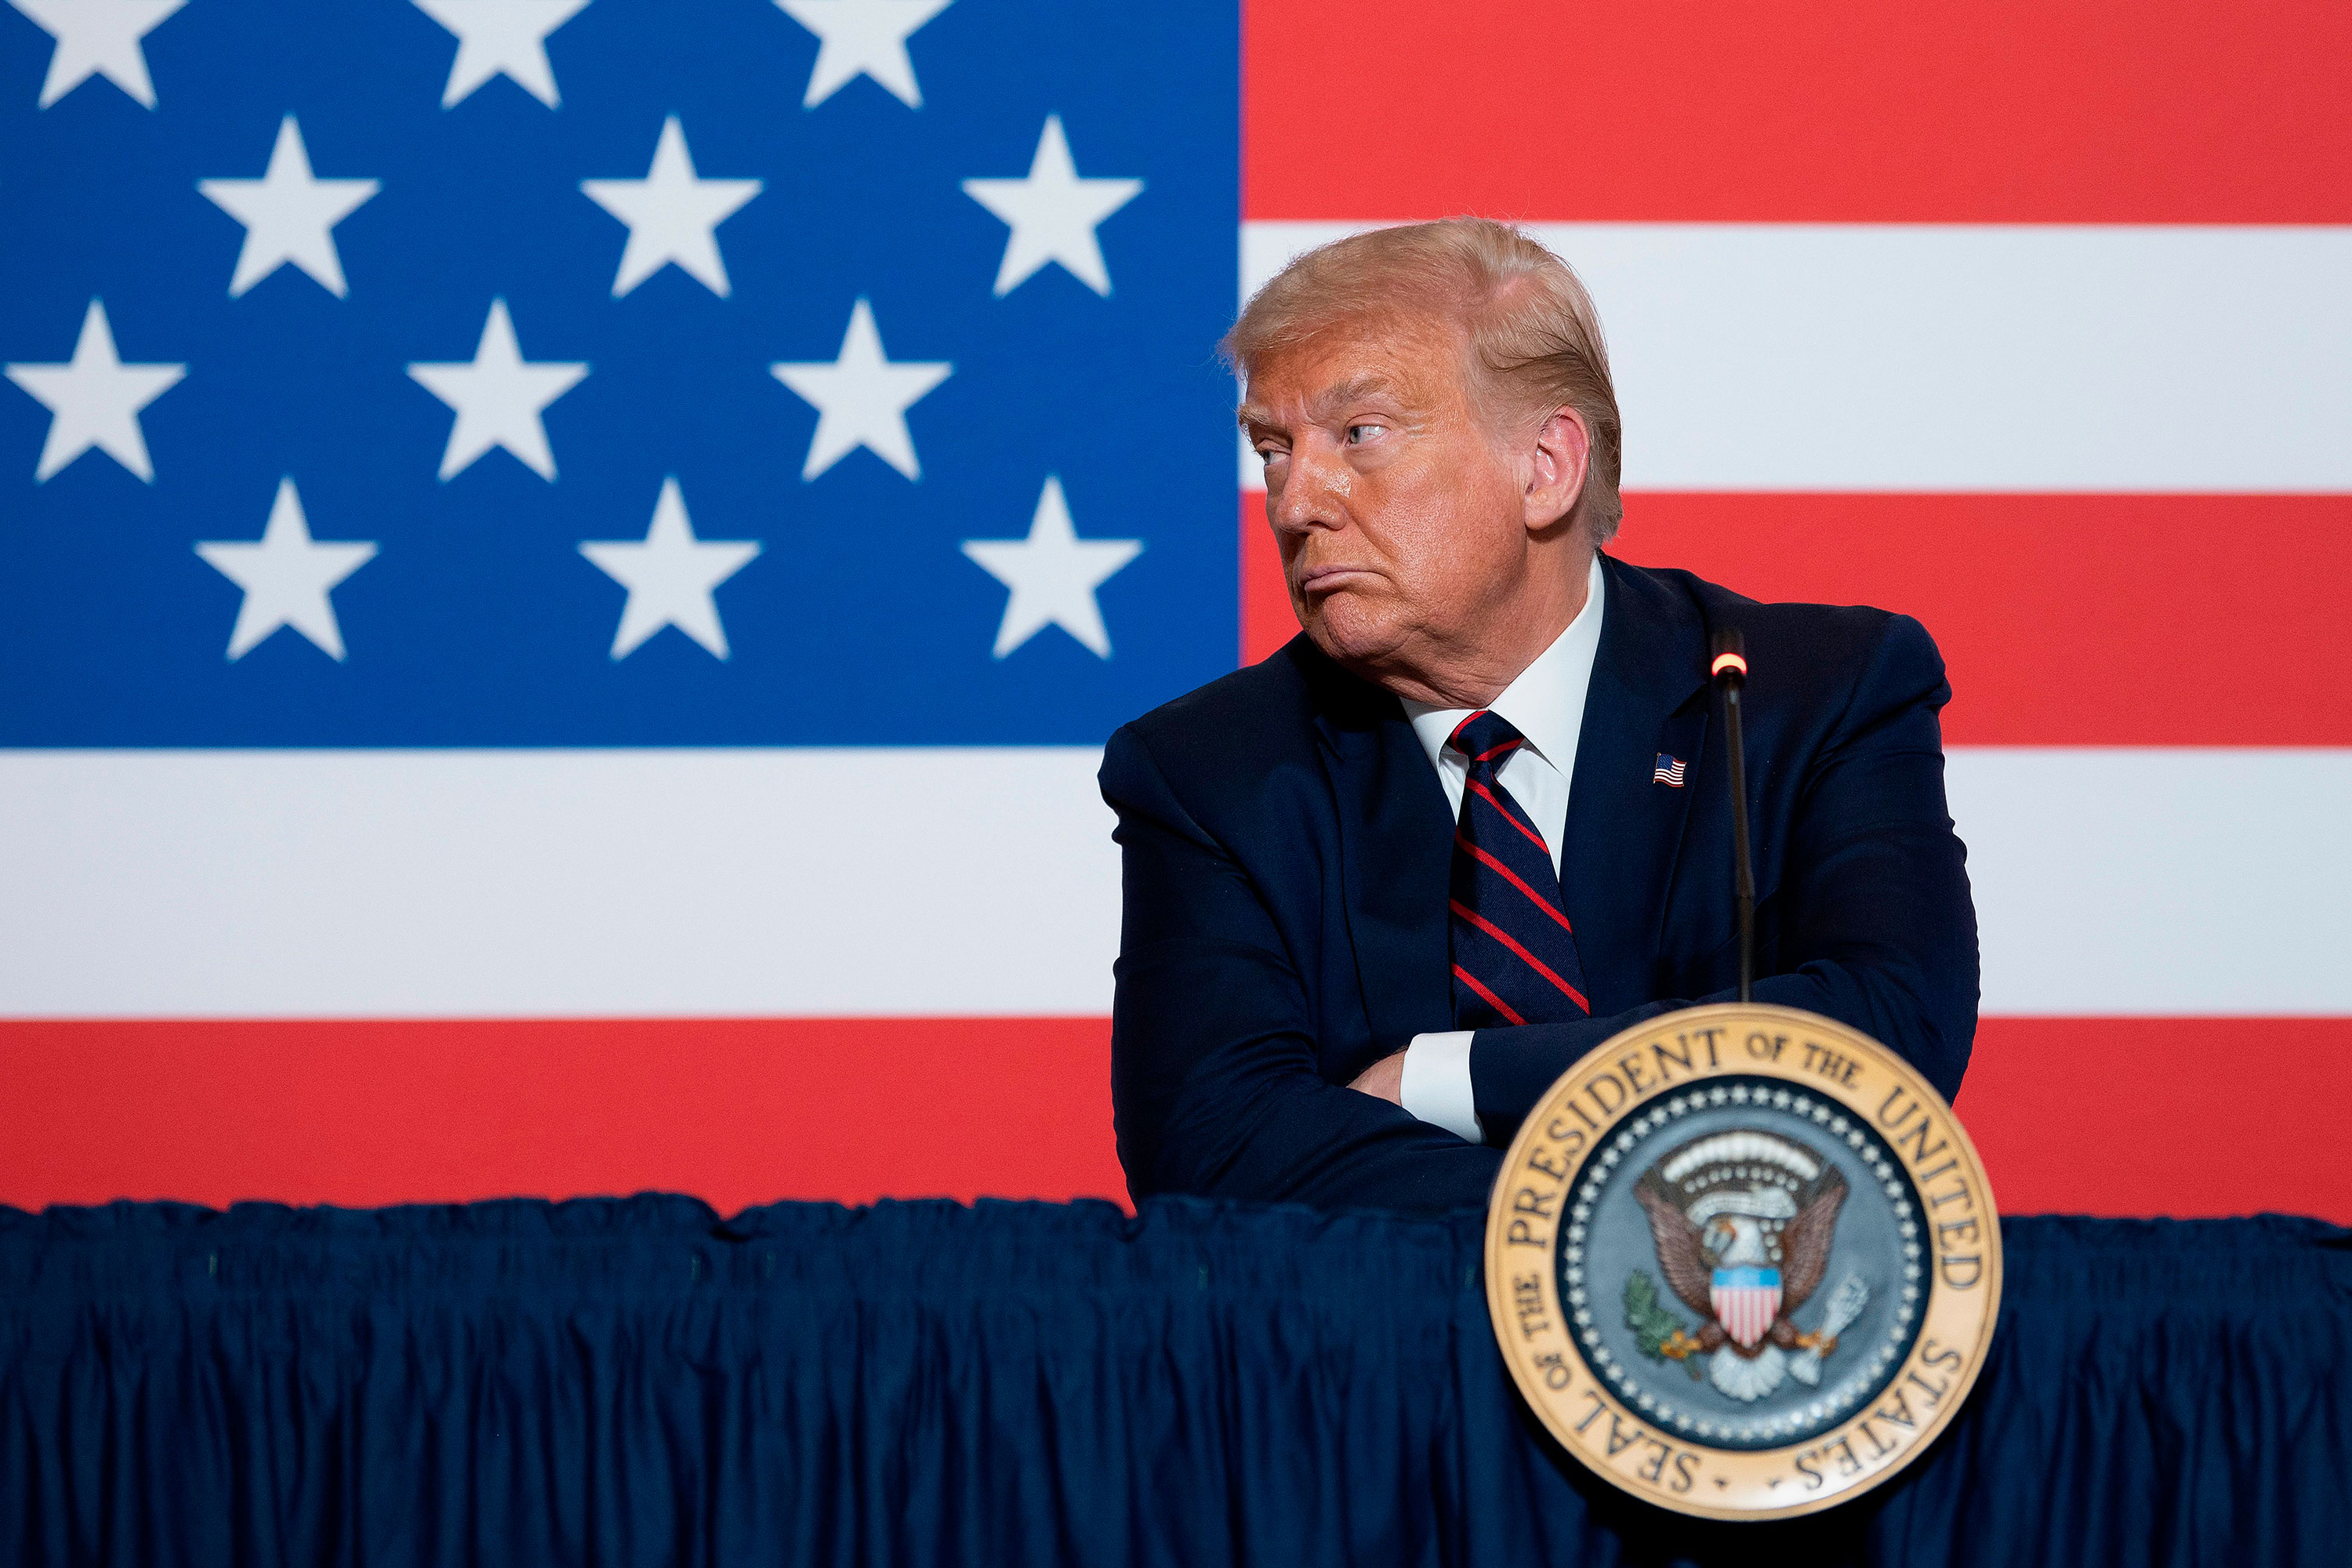 'Nobody likes me,' Trump complains, as even his allies fade